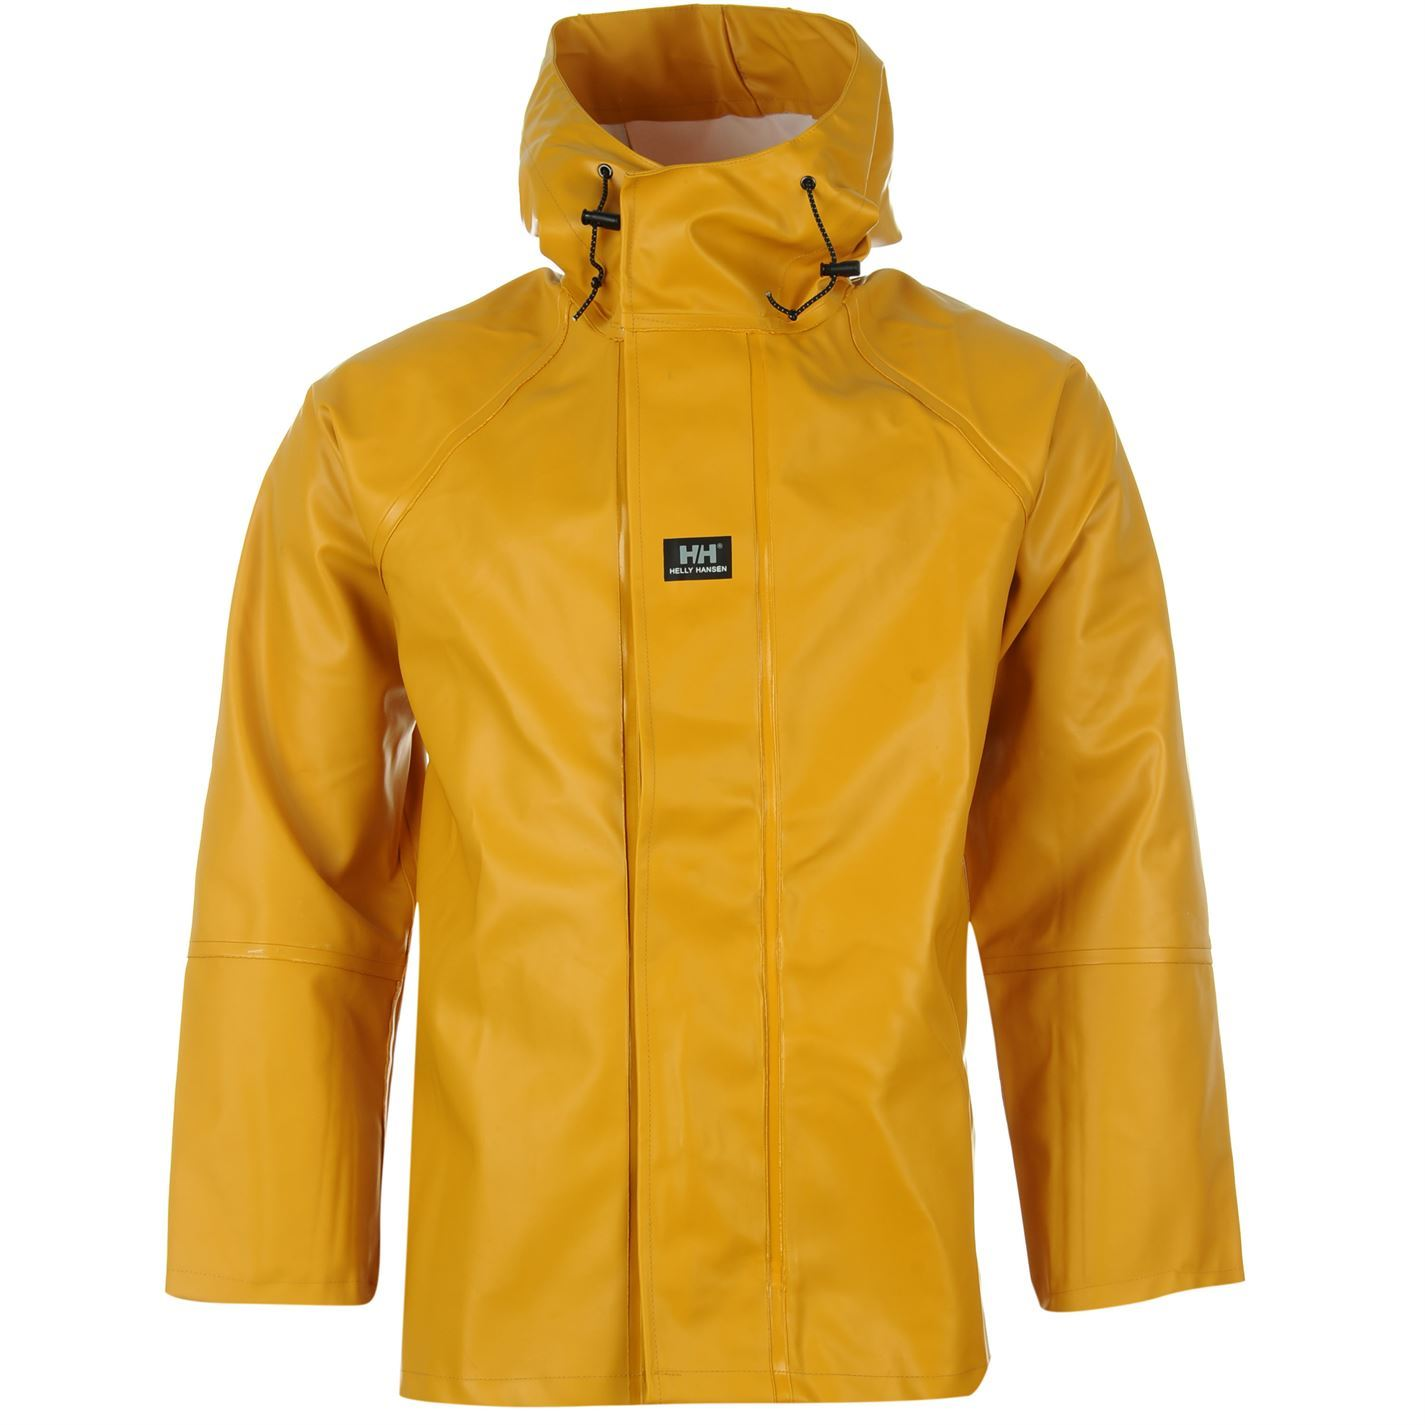 Helly Hansen Mens Narvik Hi Vis Jacket Waterproof Hooded Rain Coat ...